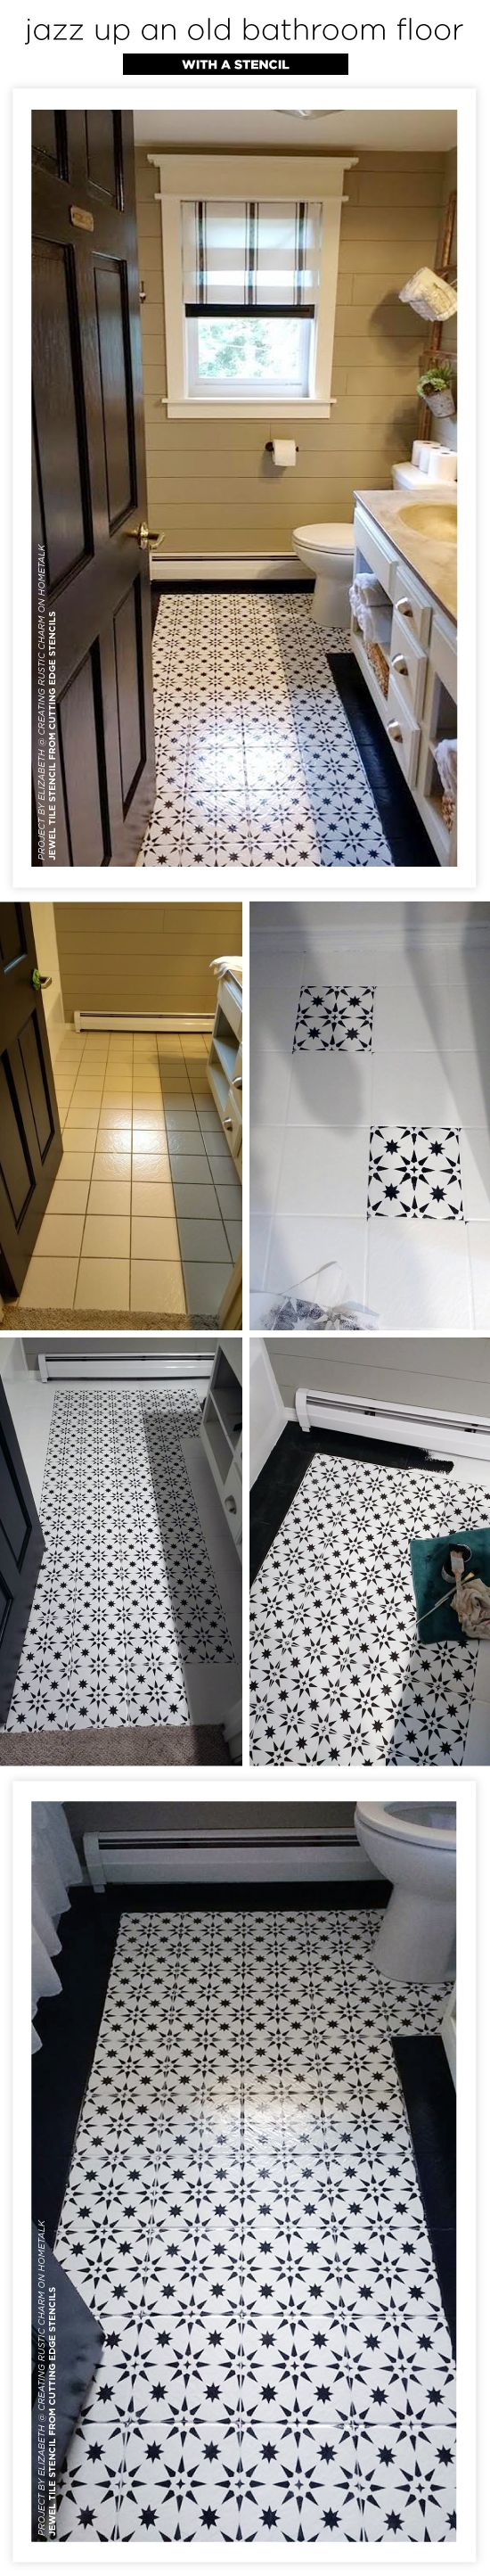 Paint ceramic tile with stencil and chalk paint how to update paint ceramic tile with stencil and chalk paint how to update bathroom floor on a budget black and white farmhouse style tile floors dailygadgetfo Images